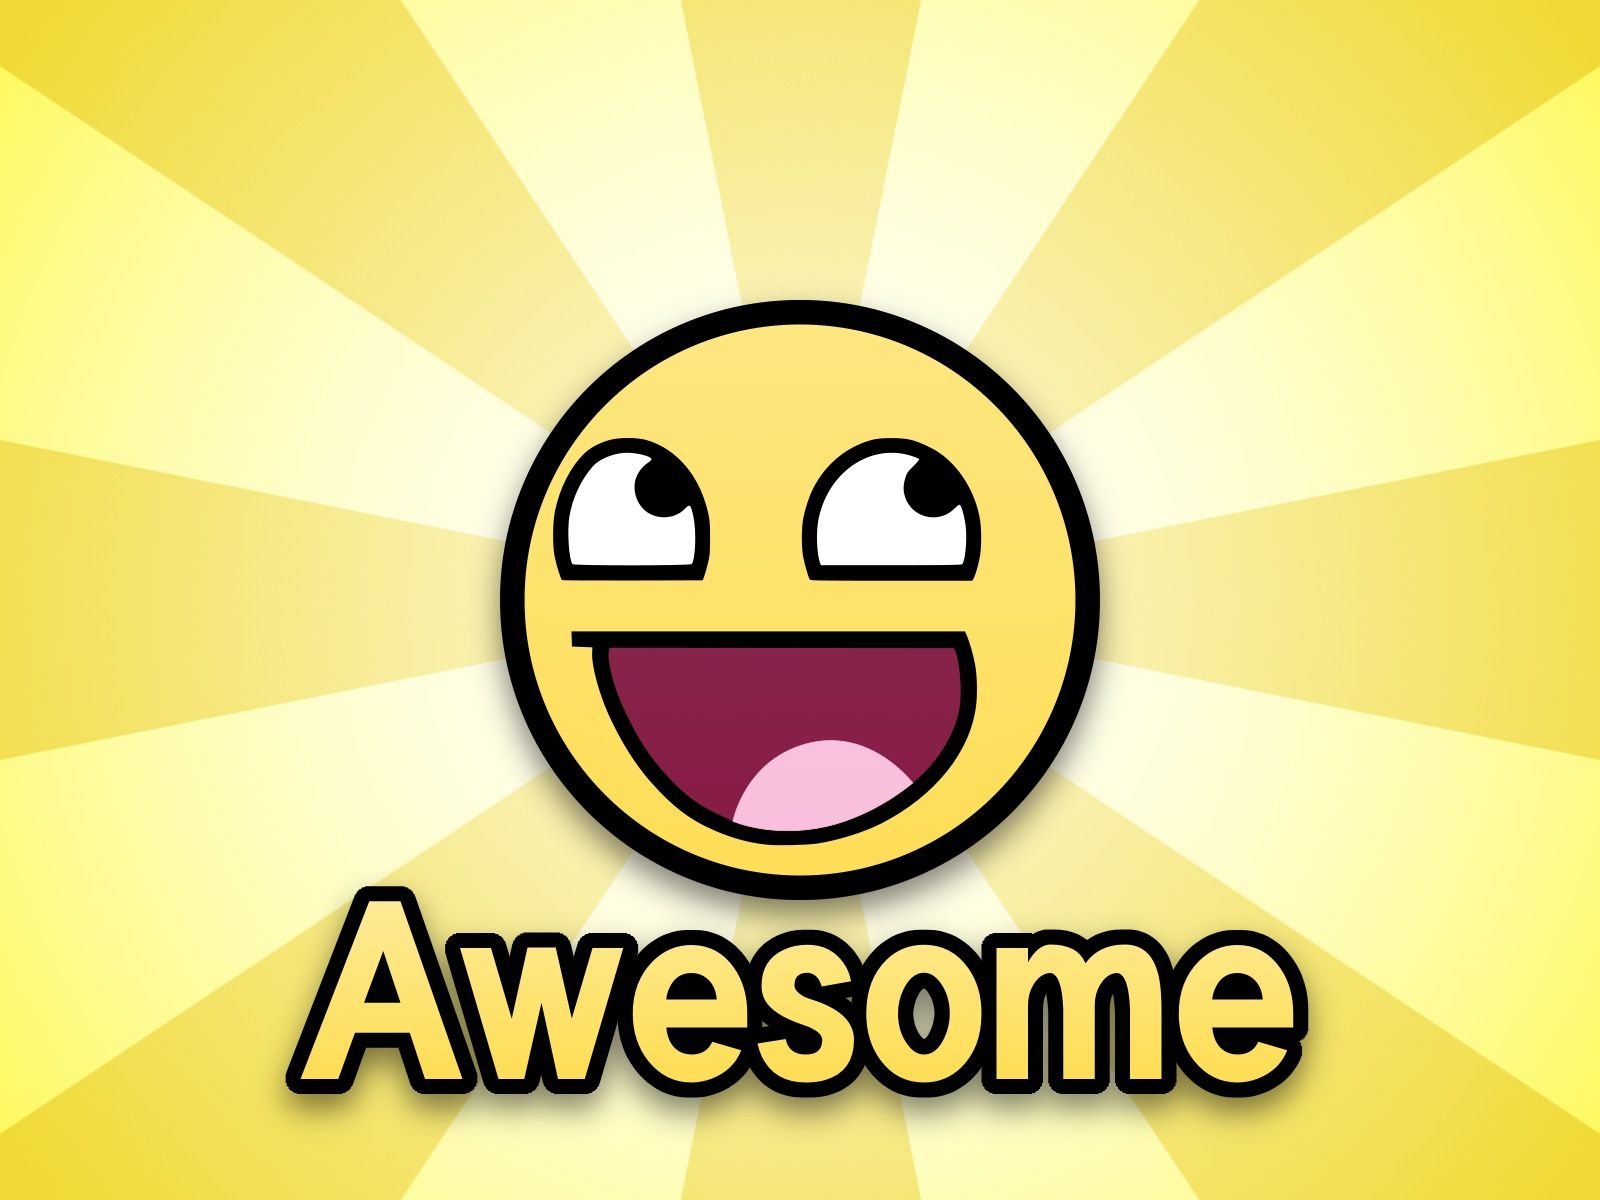 smiley awesome beams cool cute face meme nice smiley wallpaper yellow 1600x1200